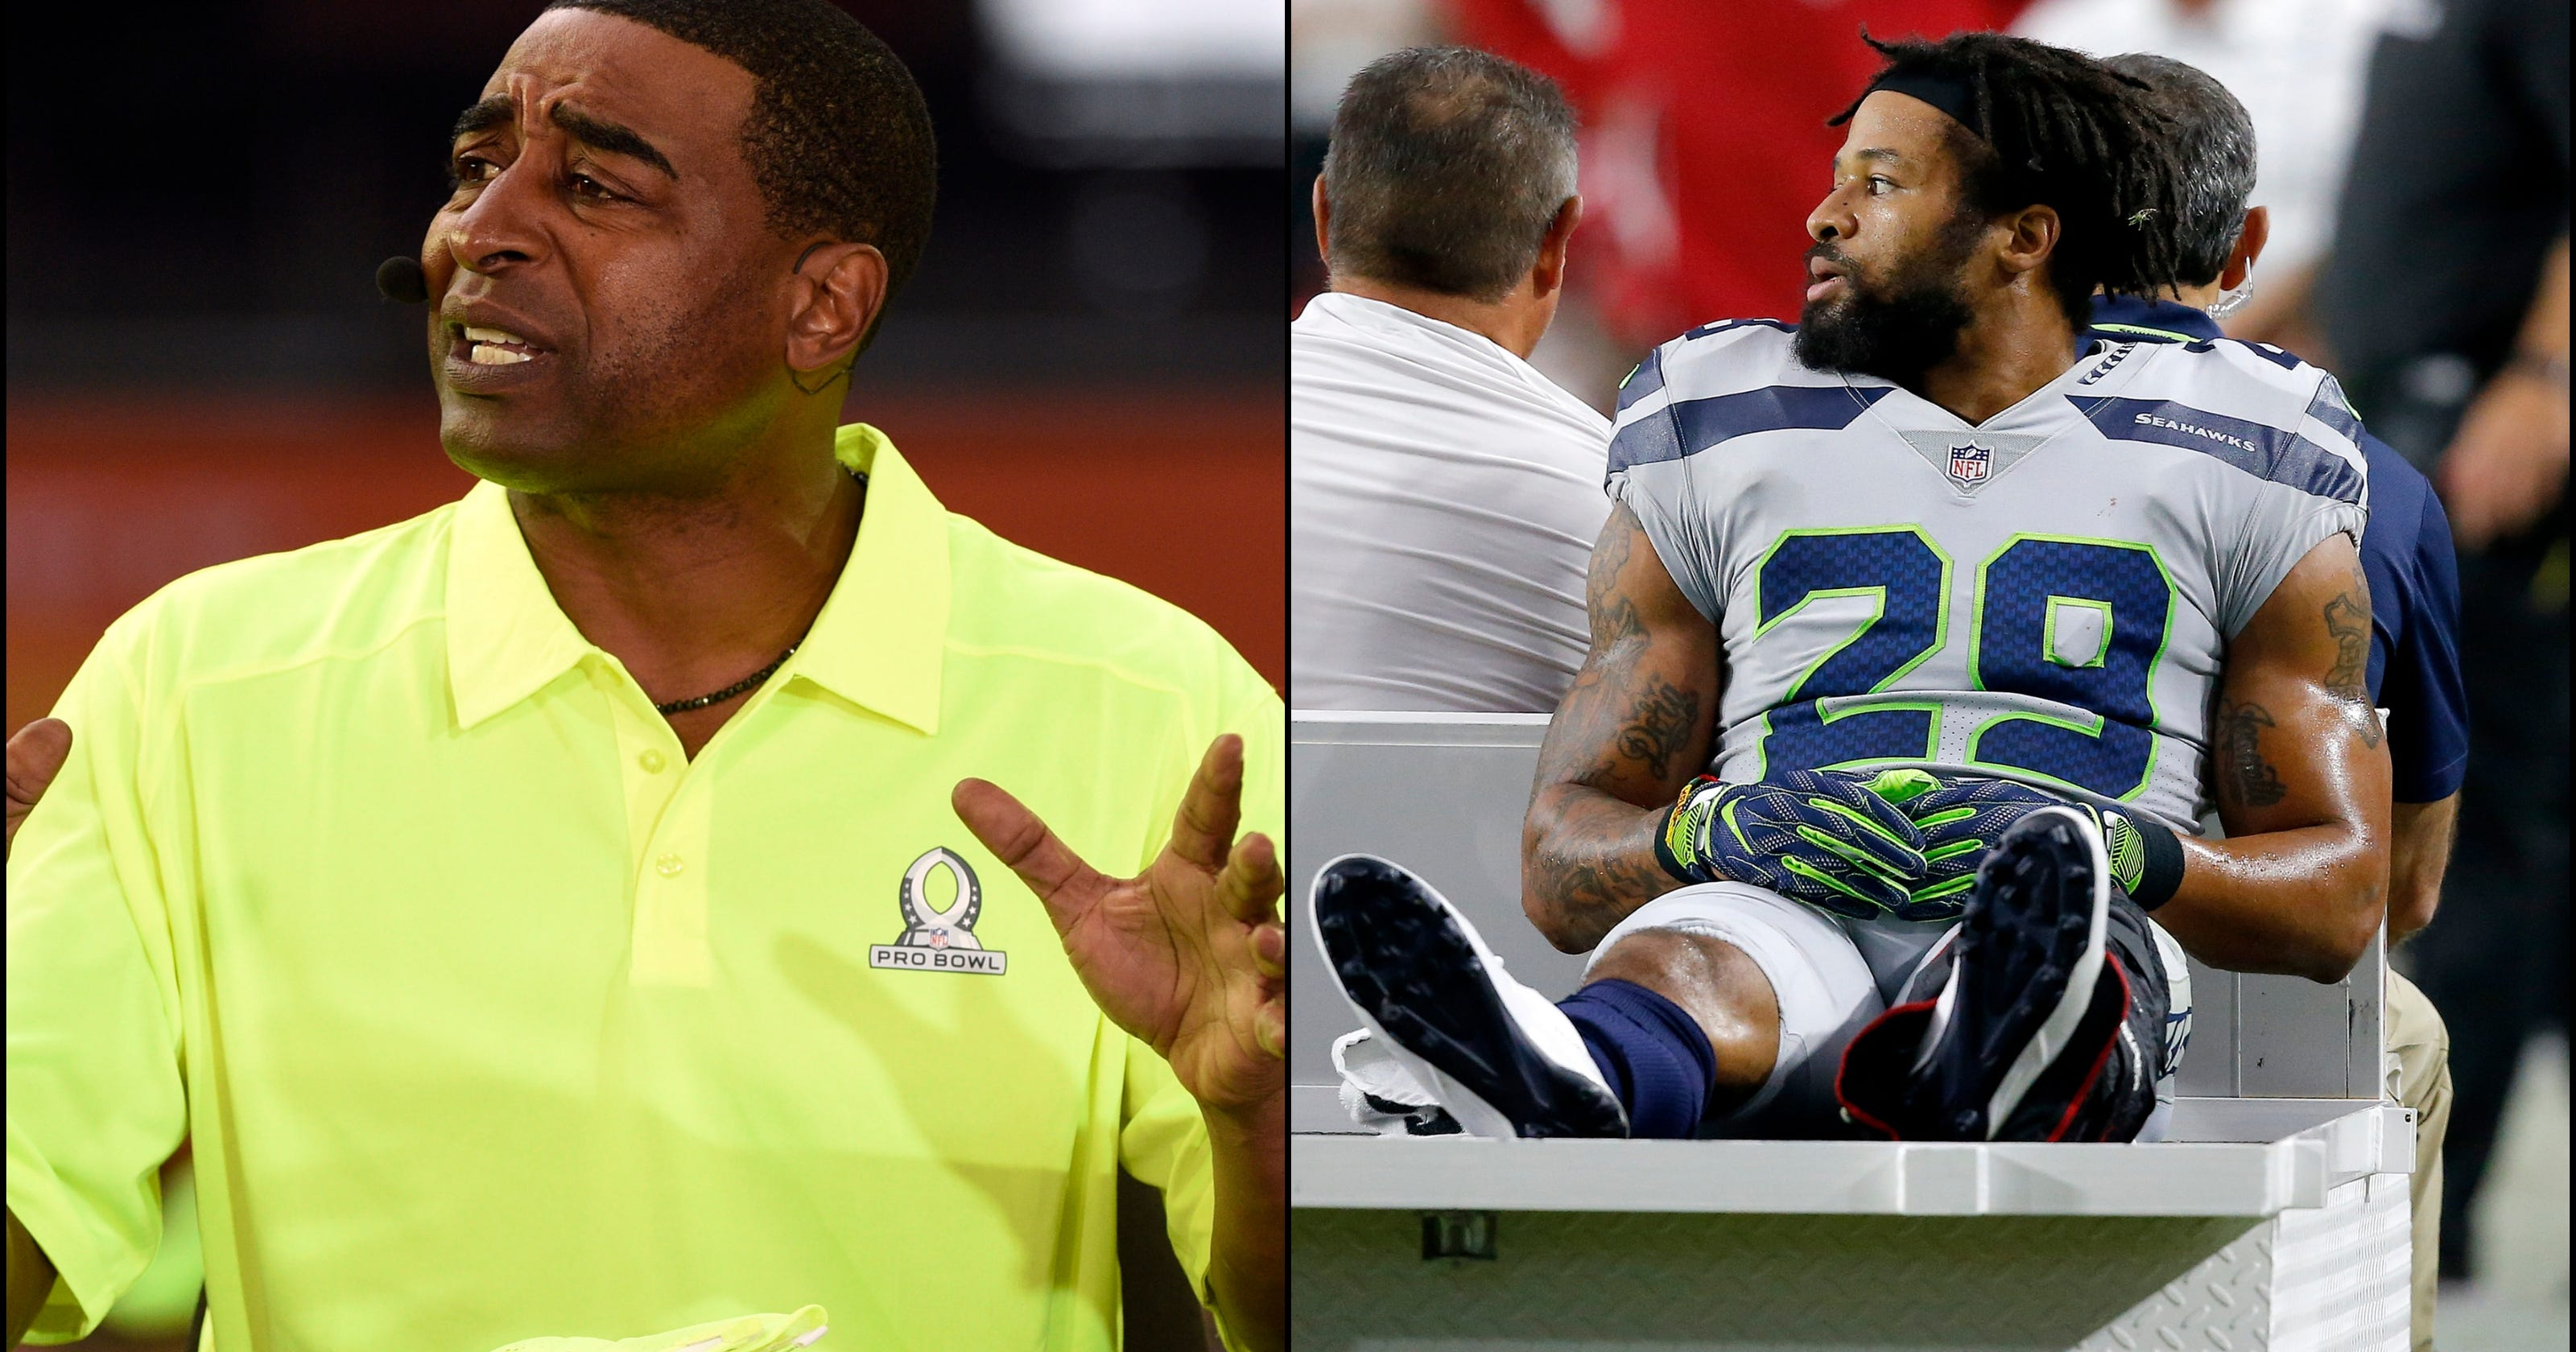 c6ad07873 Cris Carter had the worst take on Earl Thomas